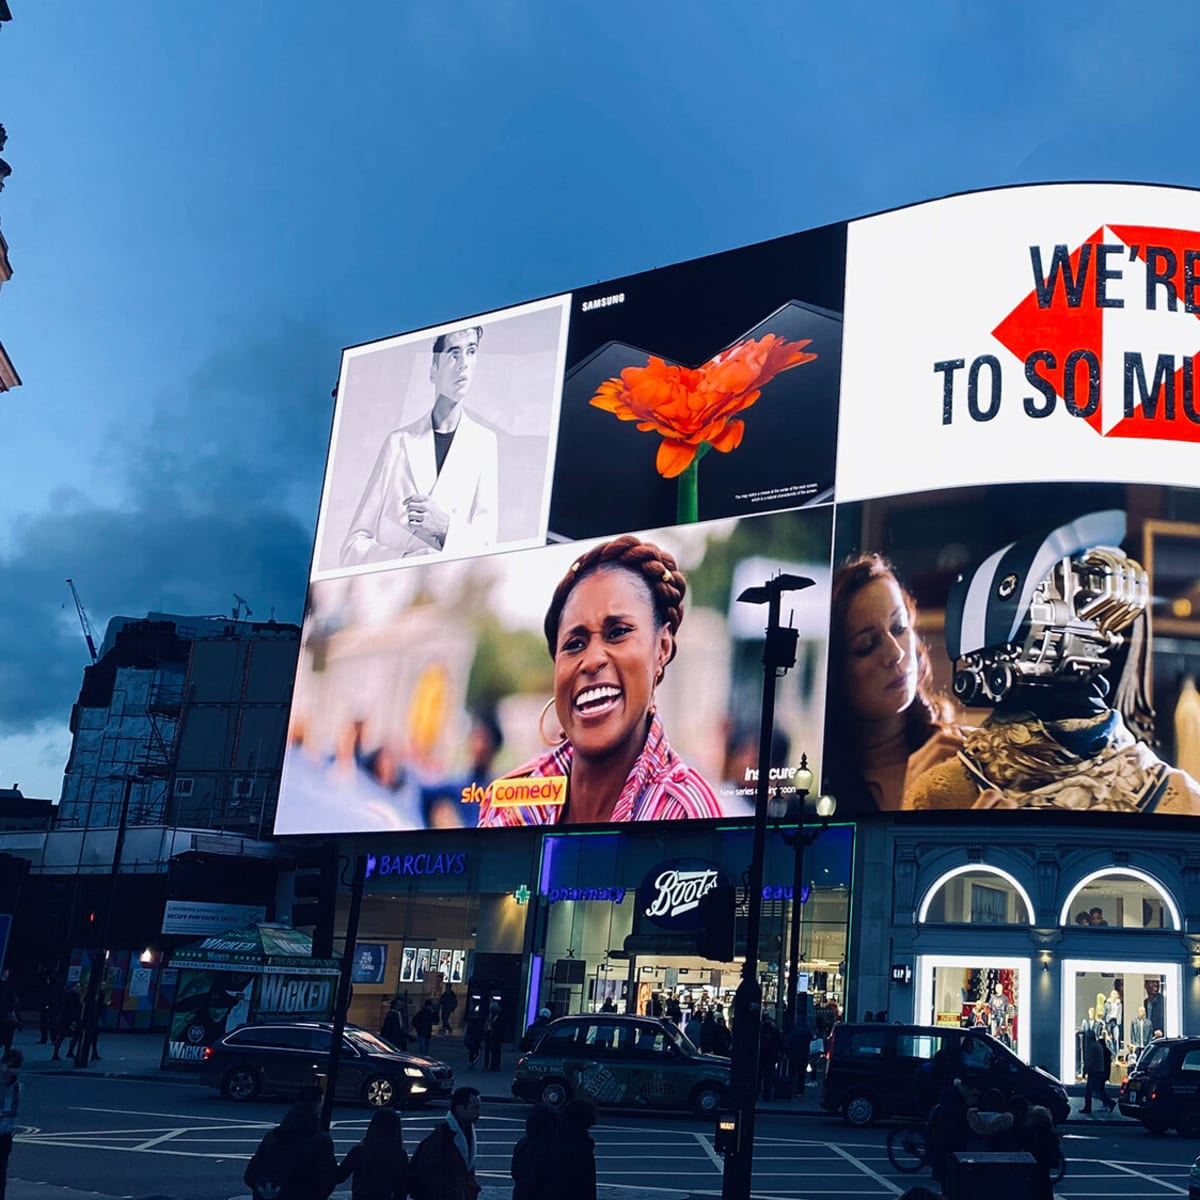 luminous advertising for HSBC at Londons Piccadilly Circus